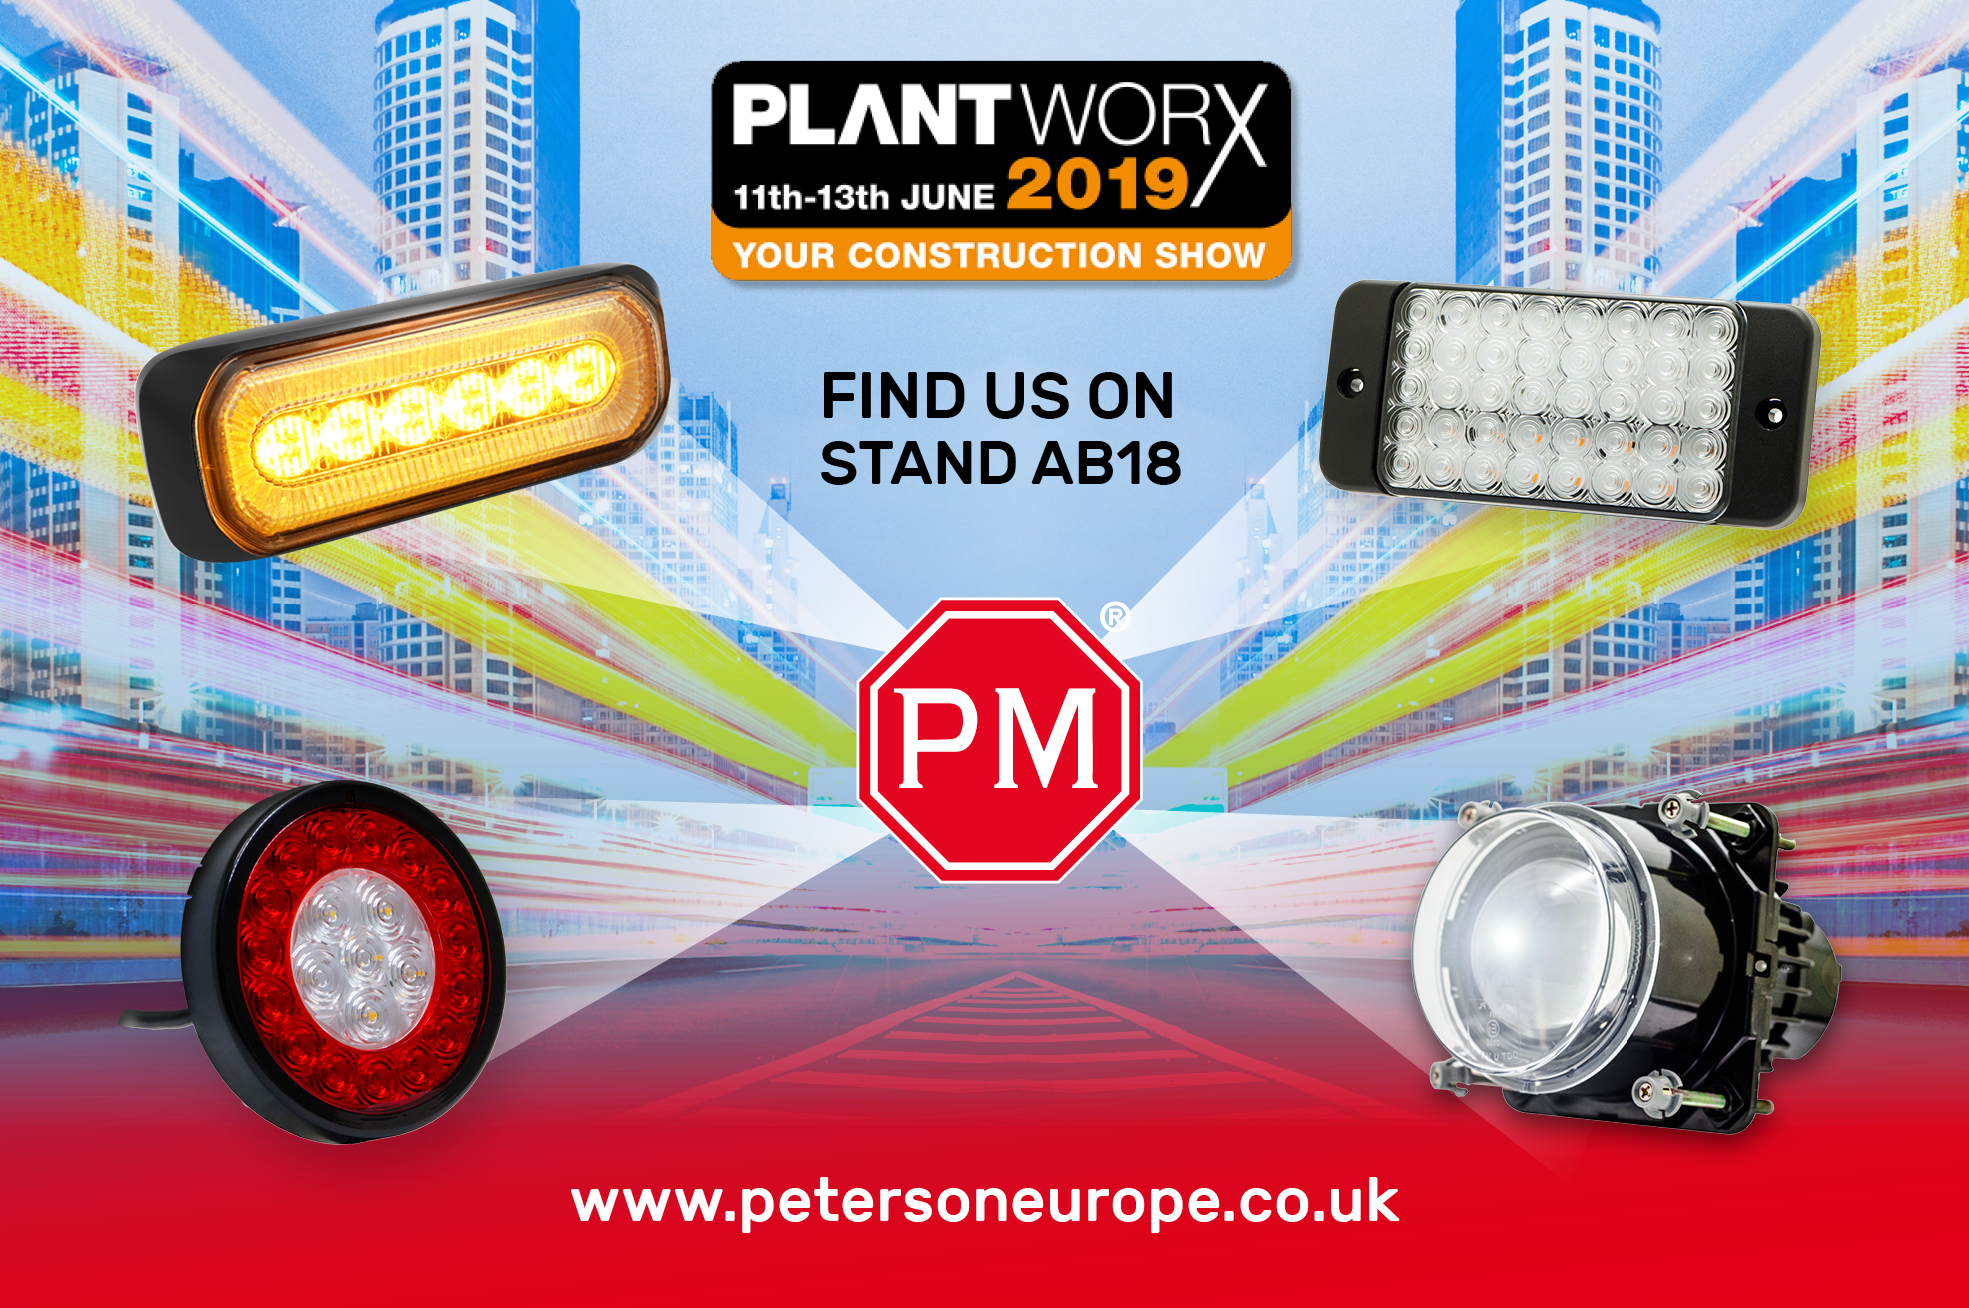 Plantworx-Featured.jpg